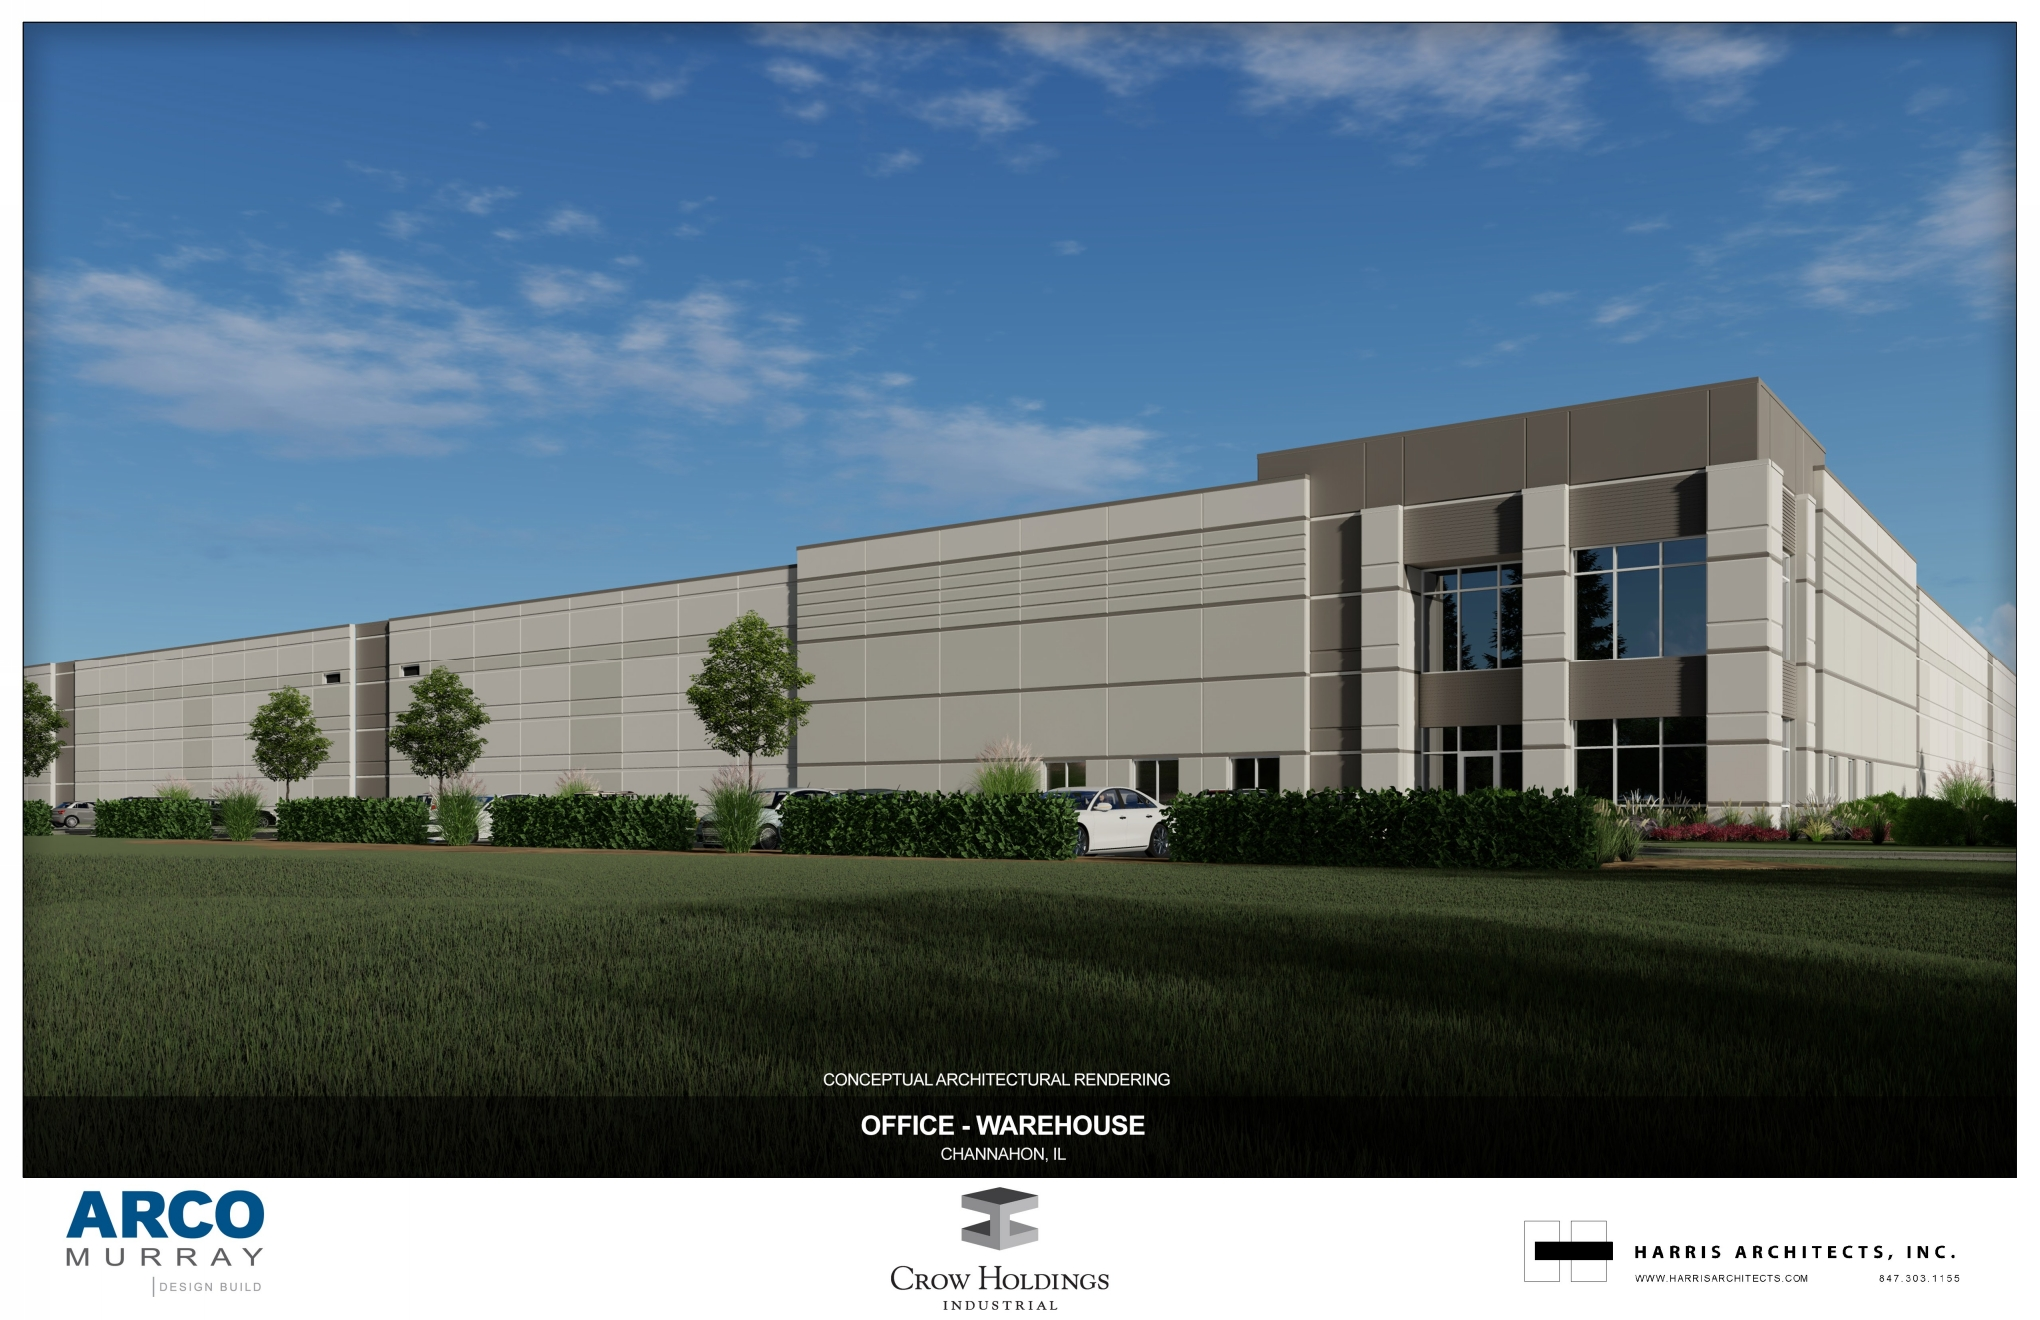 Crow Holdings Industrial Breaks Ground on First Midwest Project ...